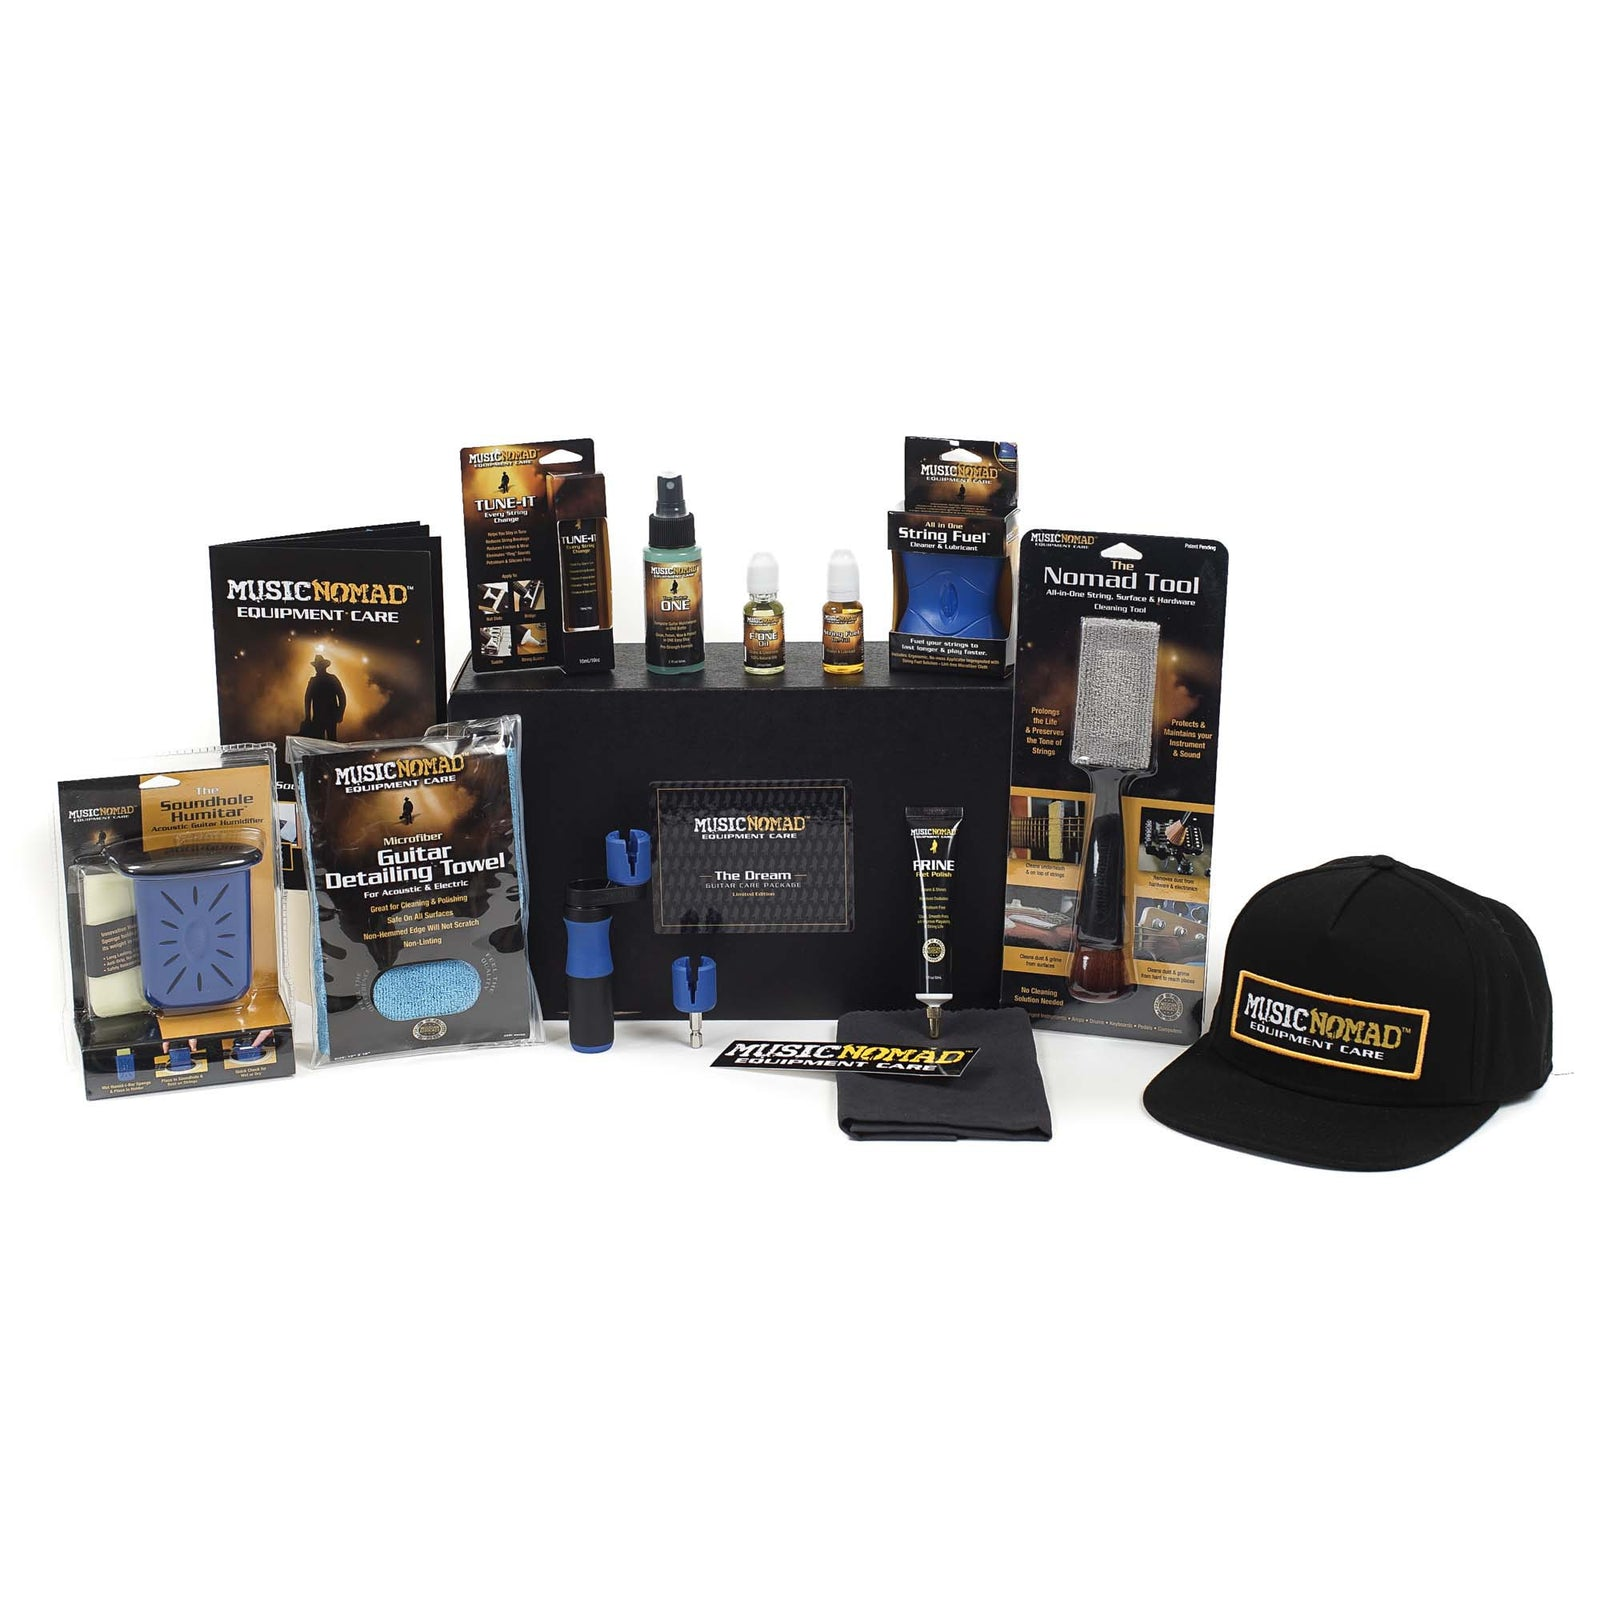 Music Nomad The Dream Guitar Care Pack - Limited Edition (12 Pak Plus Hat)